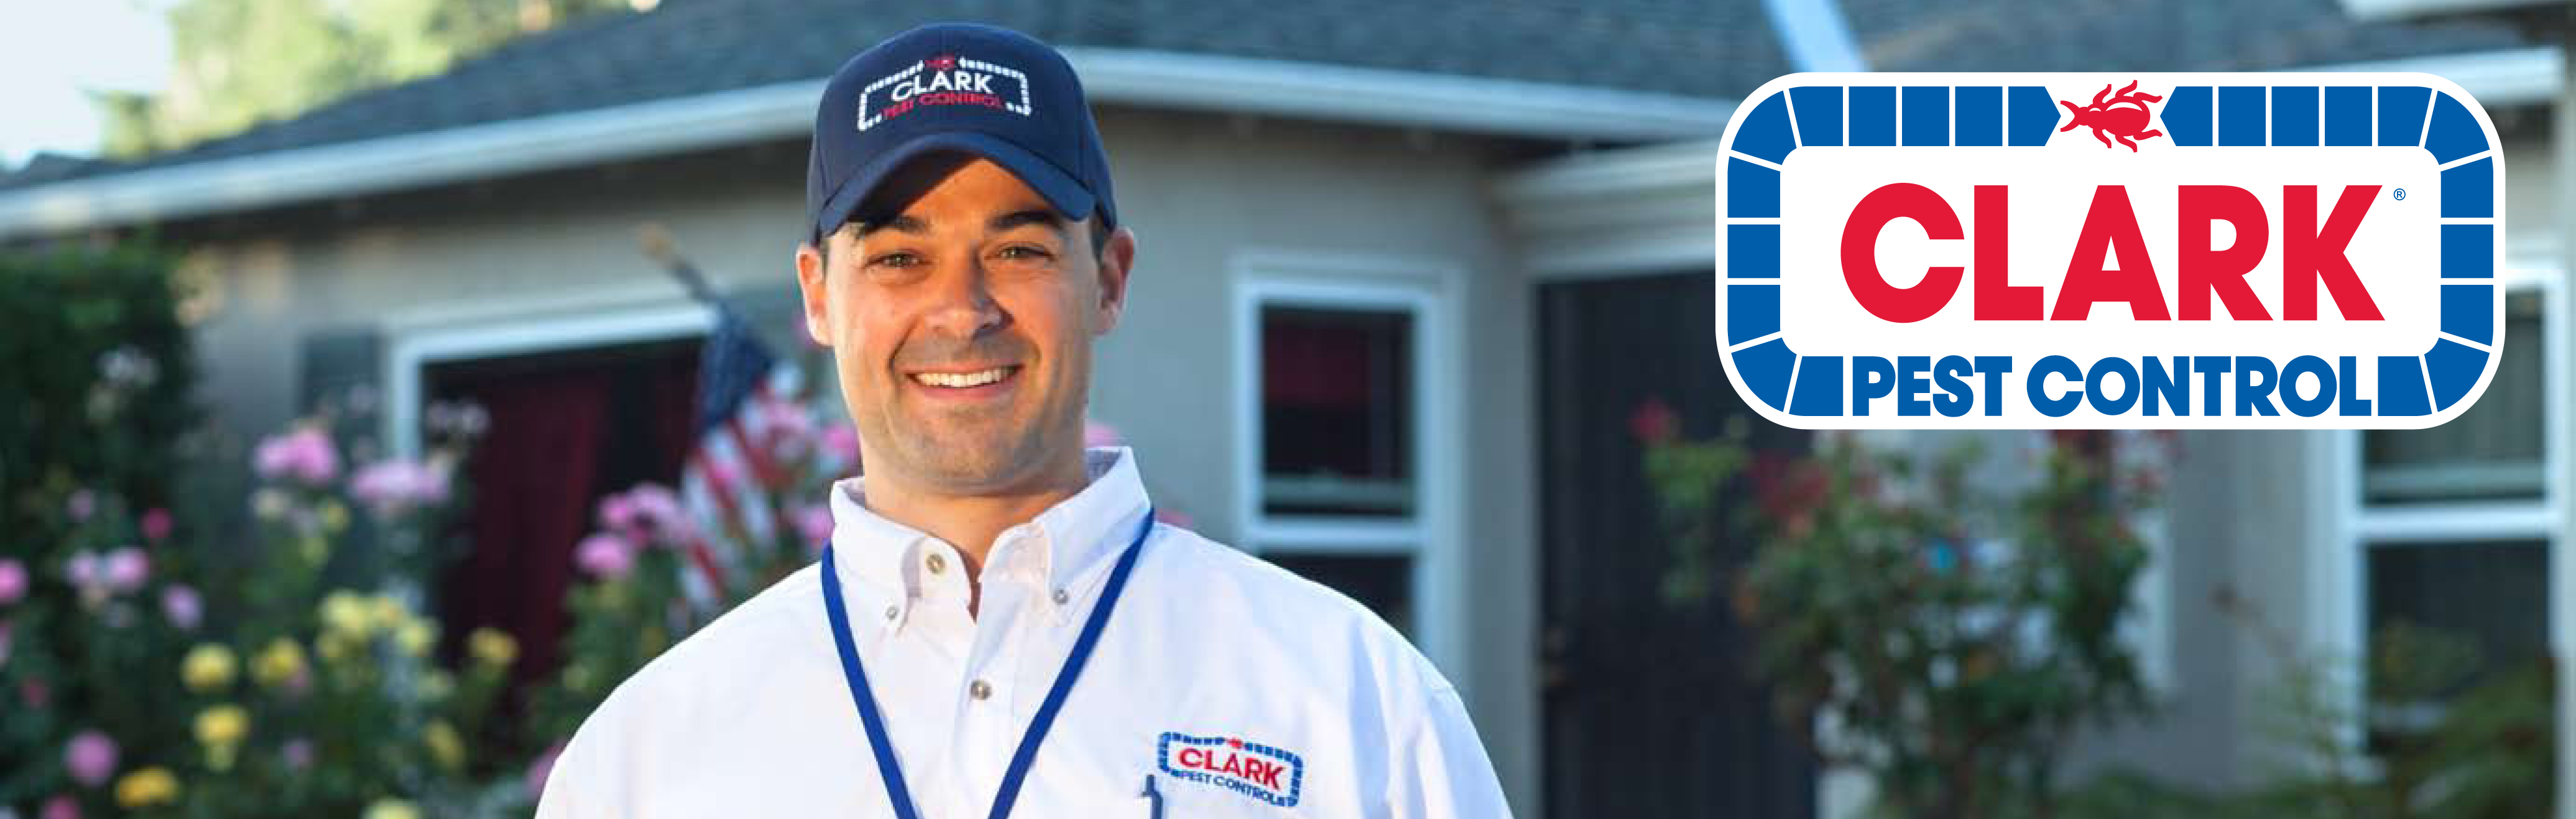 Clark Pest Control reviews | Home & Garden at 855 Lawrence Drive - Newbury Park CA